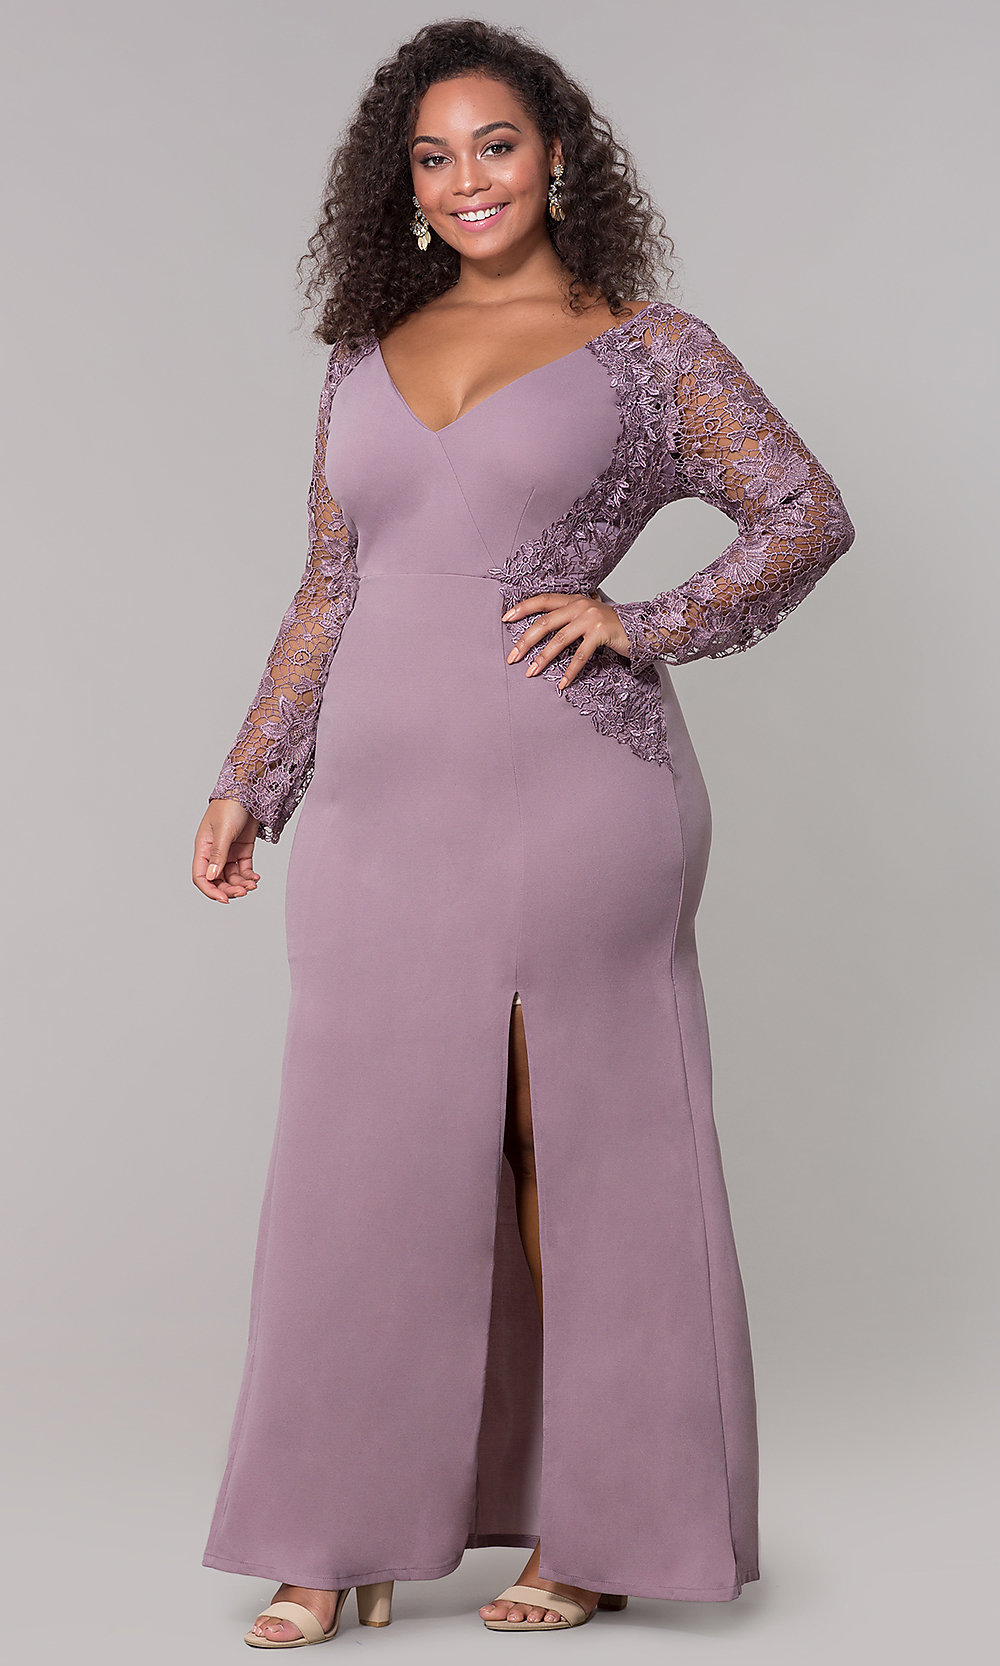 a1507acbbf8 Purple Prom Dresses Plus Size - Photo Dress Wallpaper HD AOrg